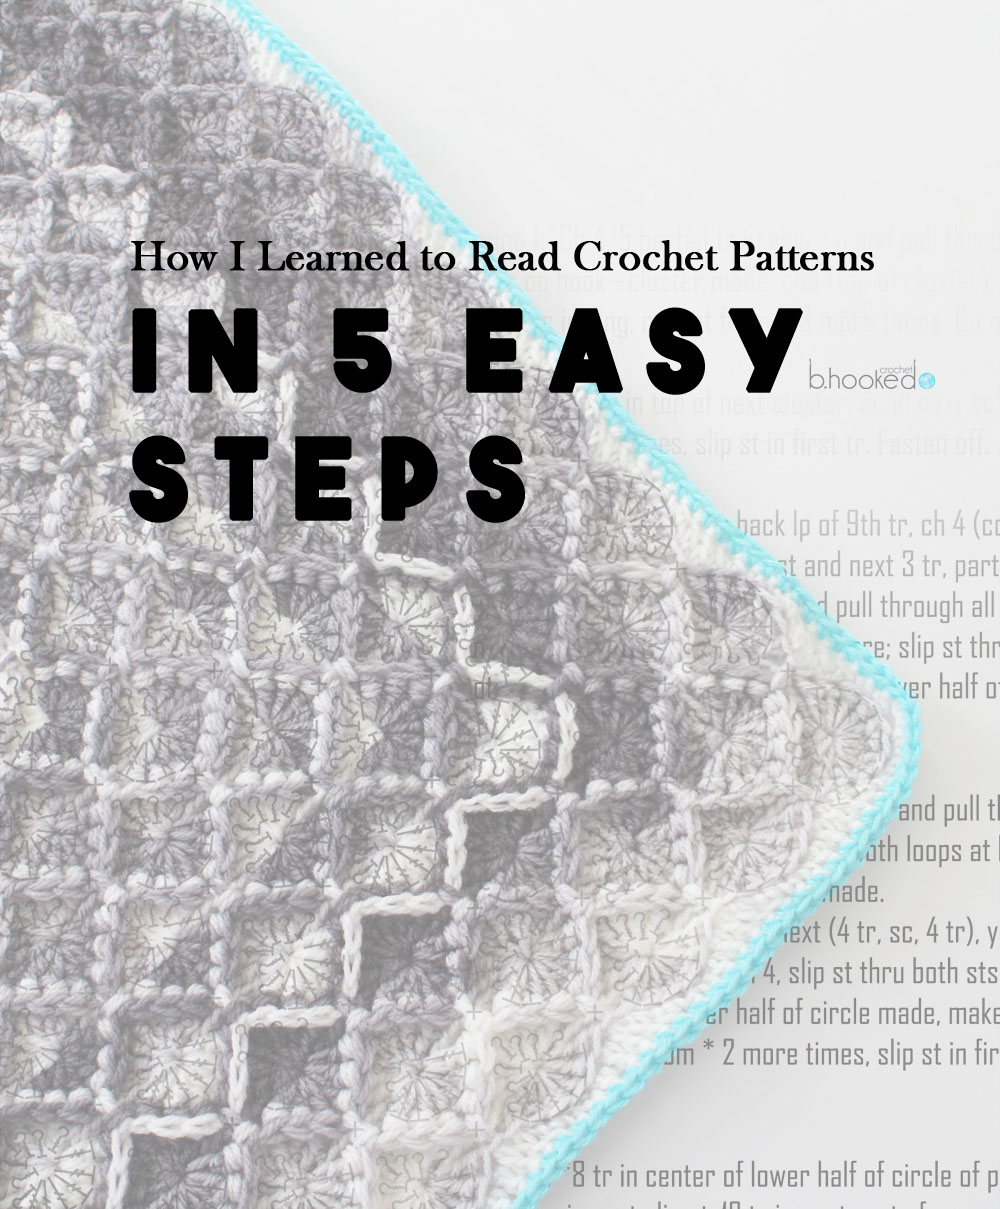 How i learned to read crochet patterns in 5 easy steps bhooked how i learned to read crochet patterns in 5 easy steps bhooked crochet bankloansurffo Images